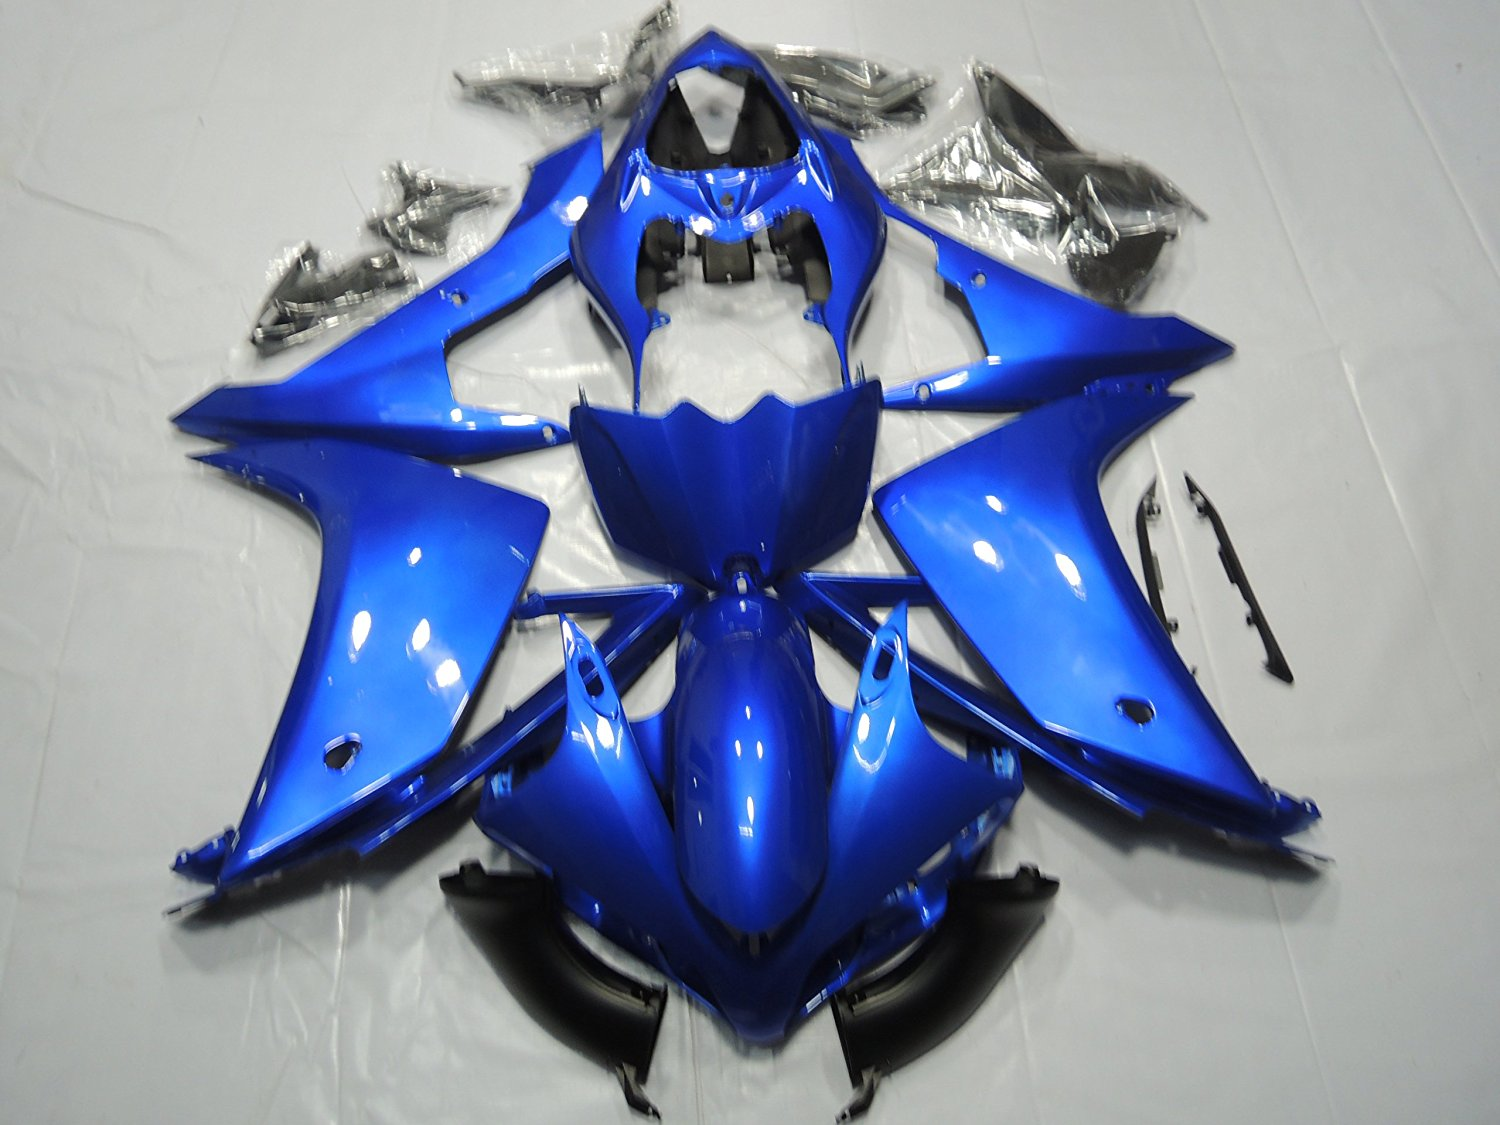 Motorcycle Bodywork Fairing Kit For Yamaha YZF R1 YZFR1 YZF-R1 2007 - 2008 07 08 Blue Injection Mold Fairings Cowl UV Painted for yamaha yzf 1000 r1 2007 2008 yzf1000r inject abs plastic motorcycle fairing kit yzfr1 07 08 yzf1000r1 yzf 1000r cb02